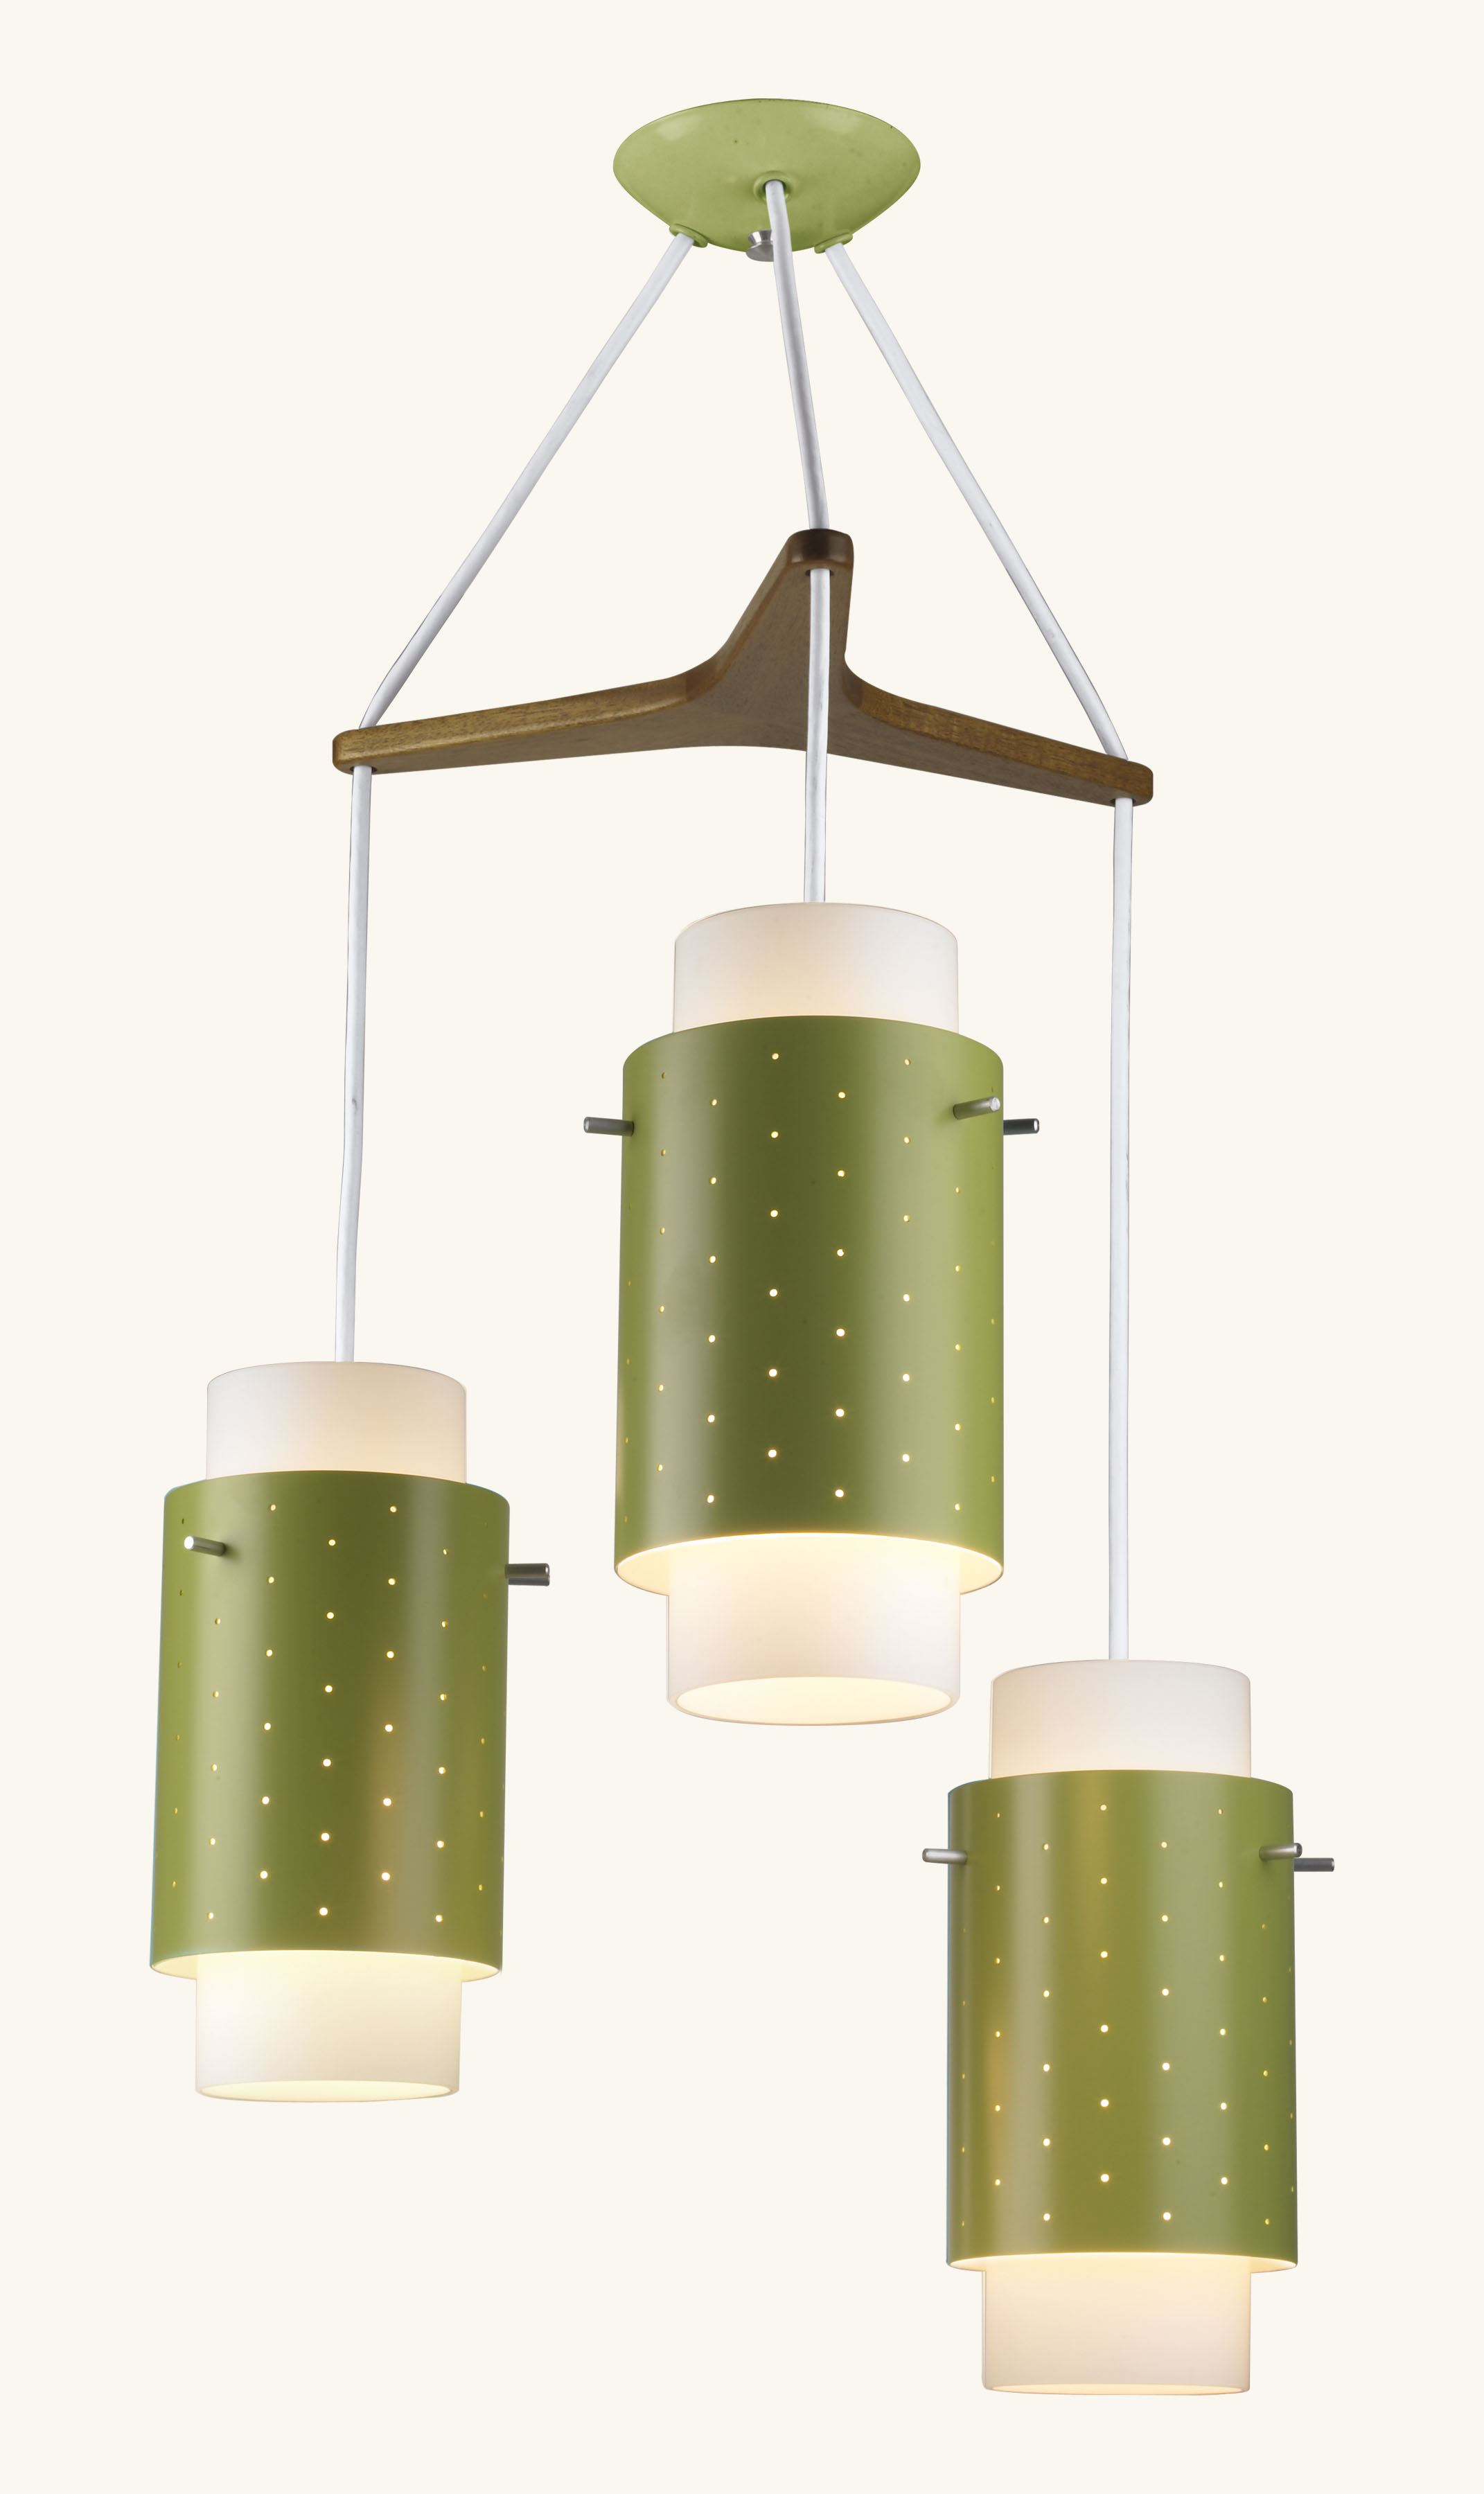 Rejuvenation Lighting Fixtures Fun, Colorful, Sleek - Rejuvenation Unveils Its Newest Mid